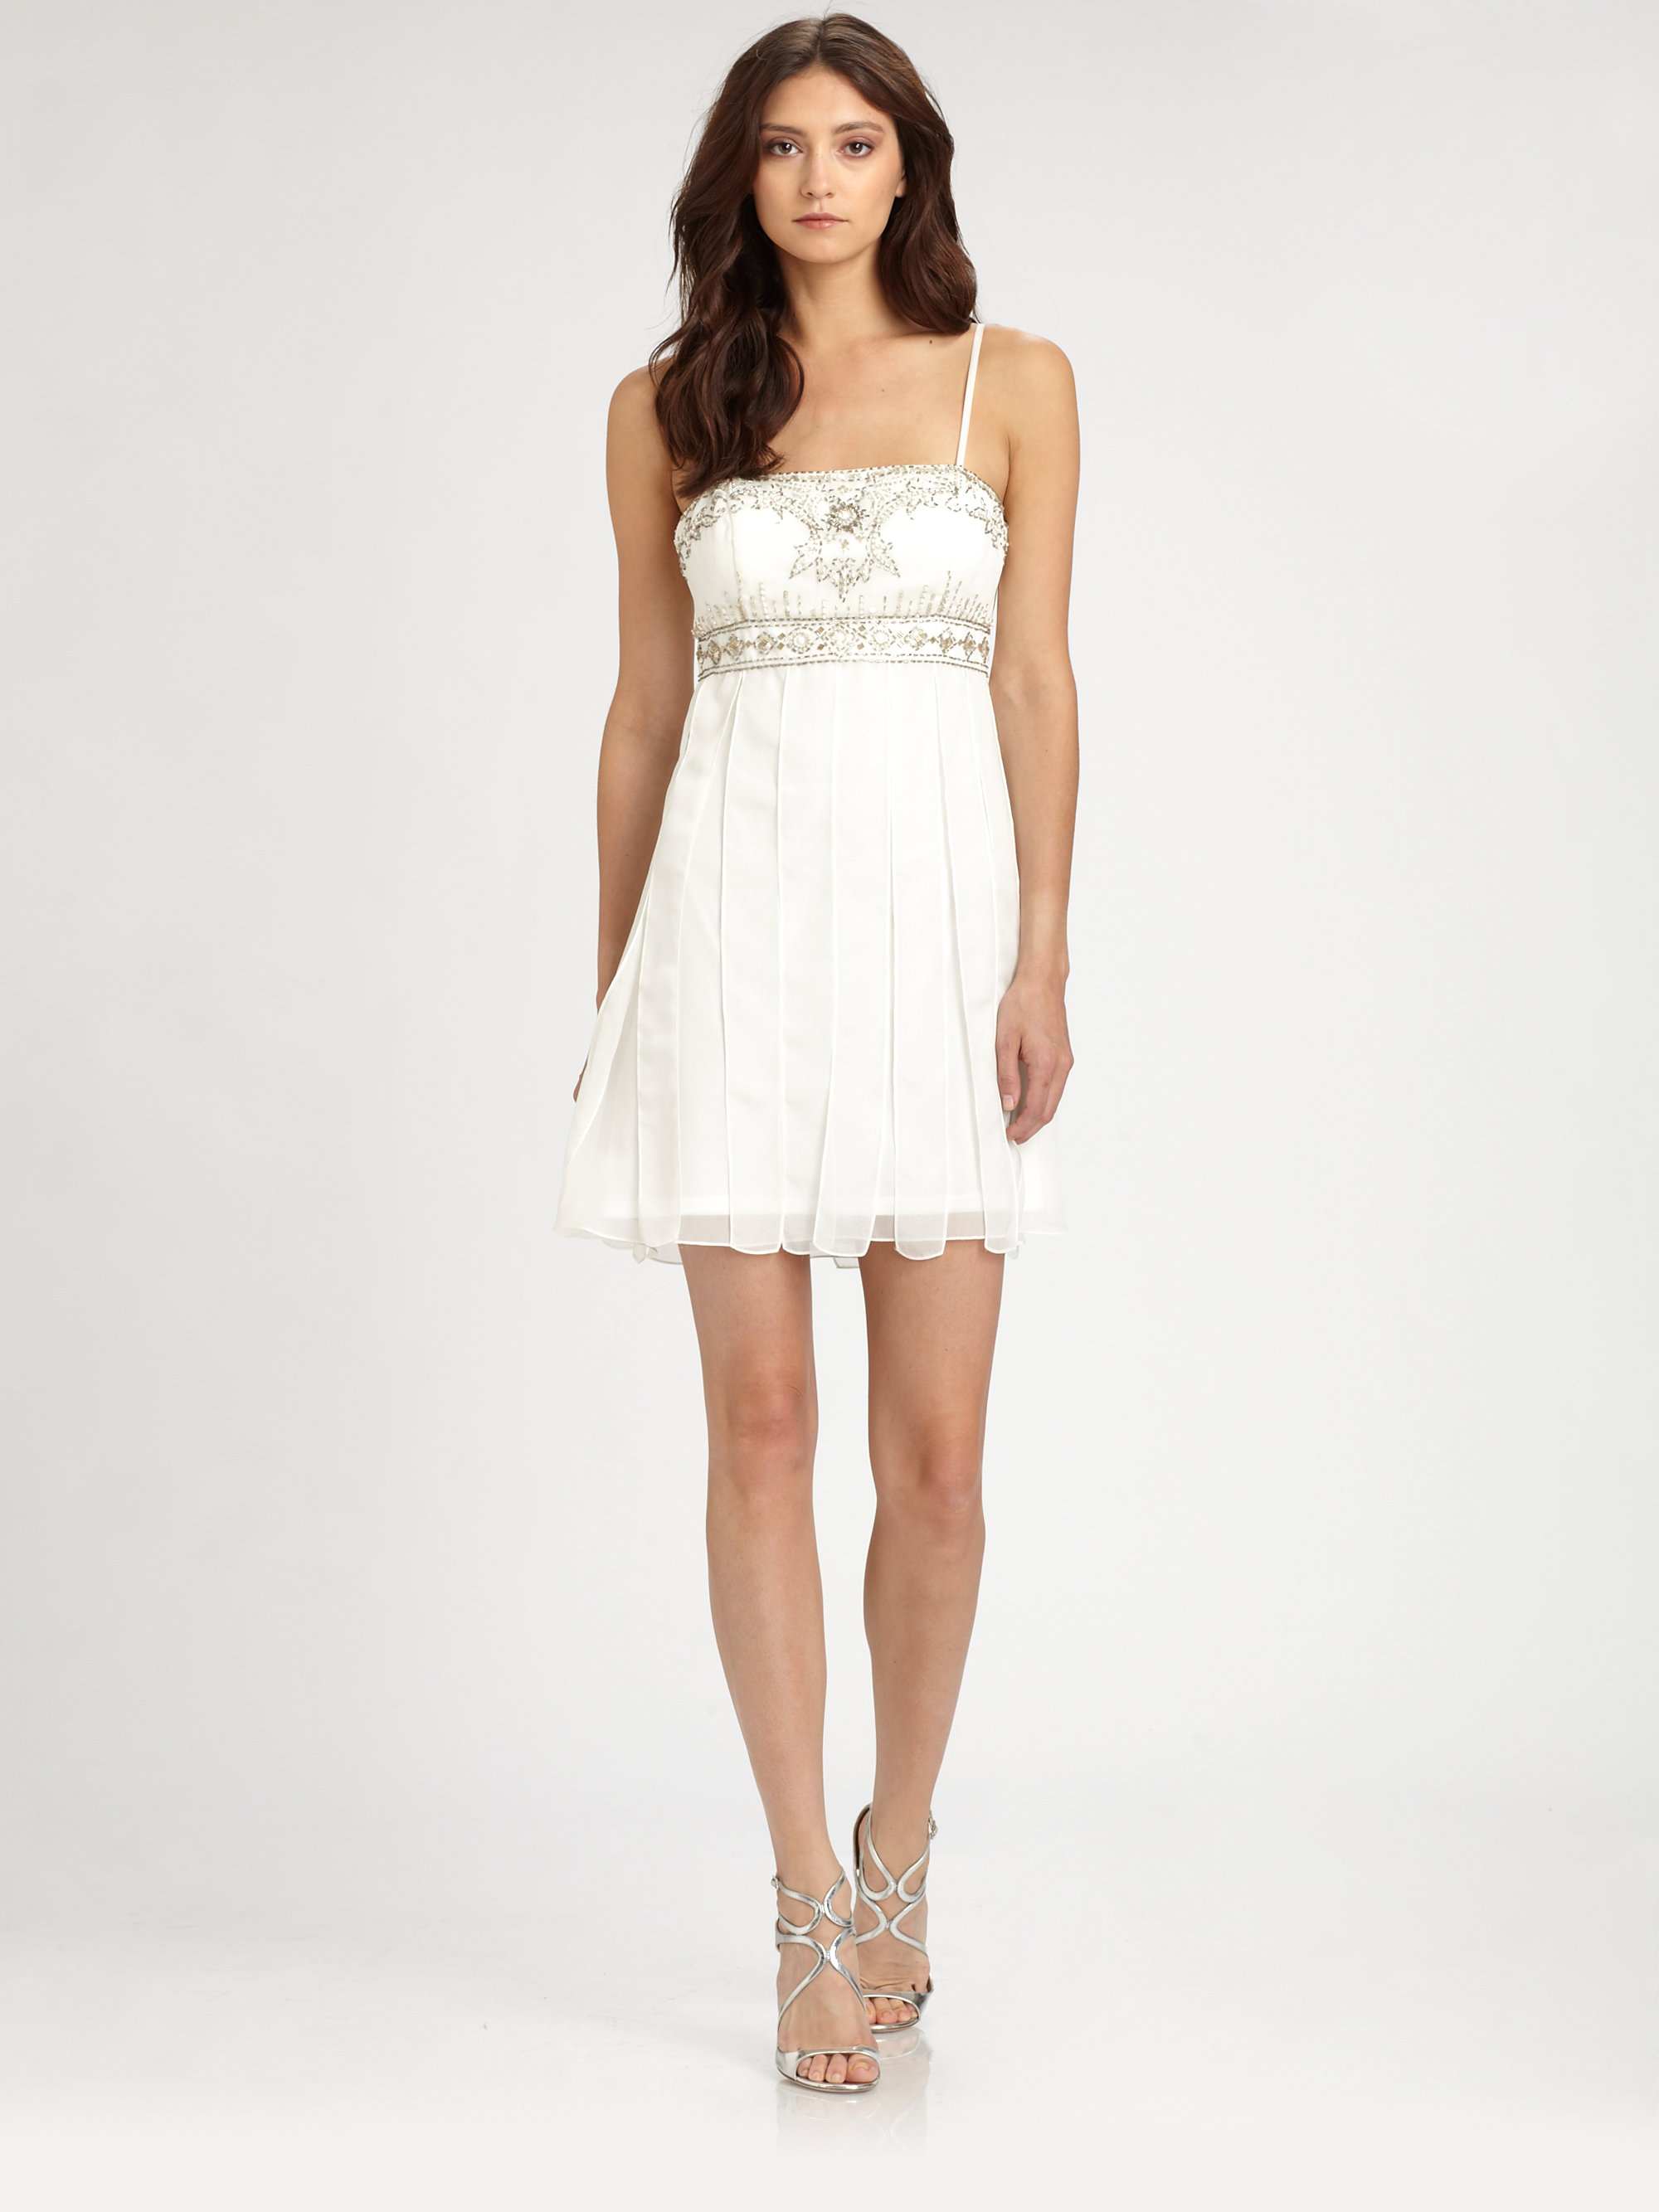 Sue wong Beaded Babydoll Dress in White - Lyst